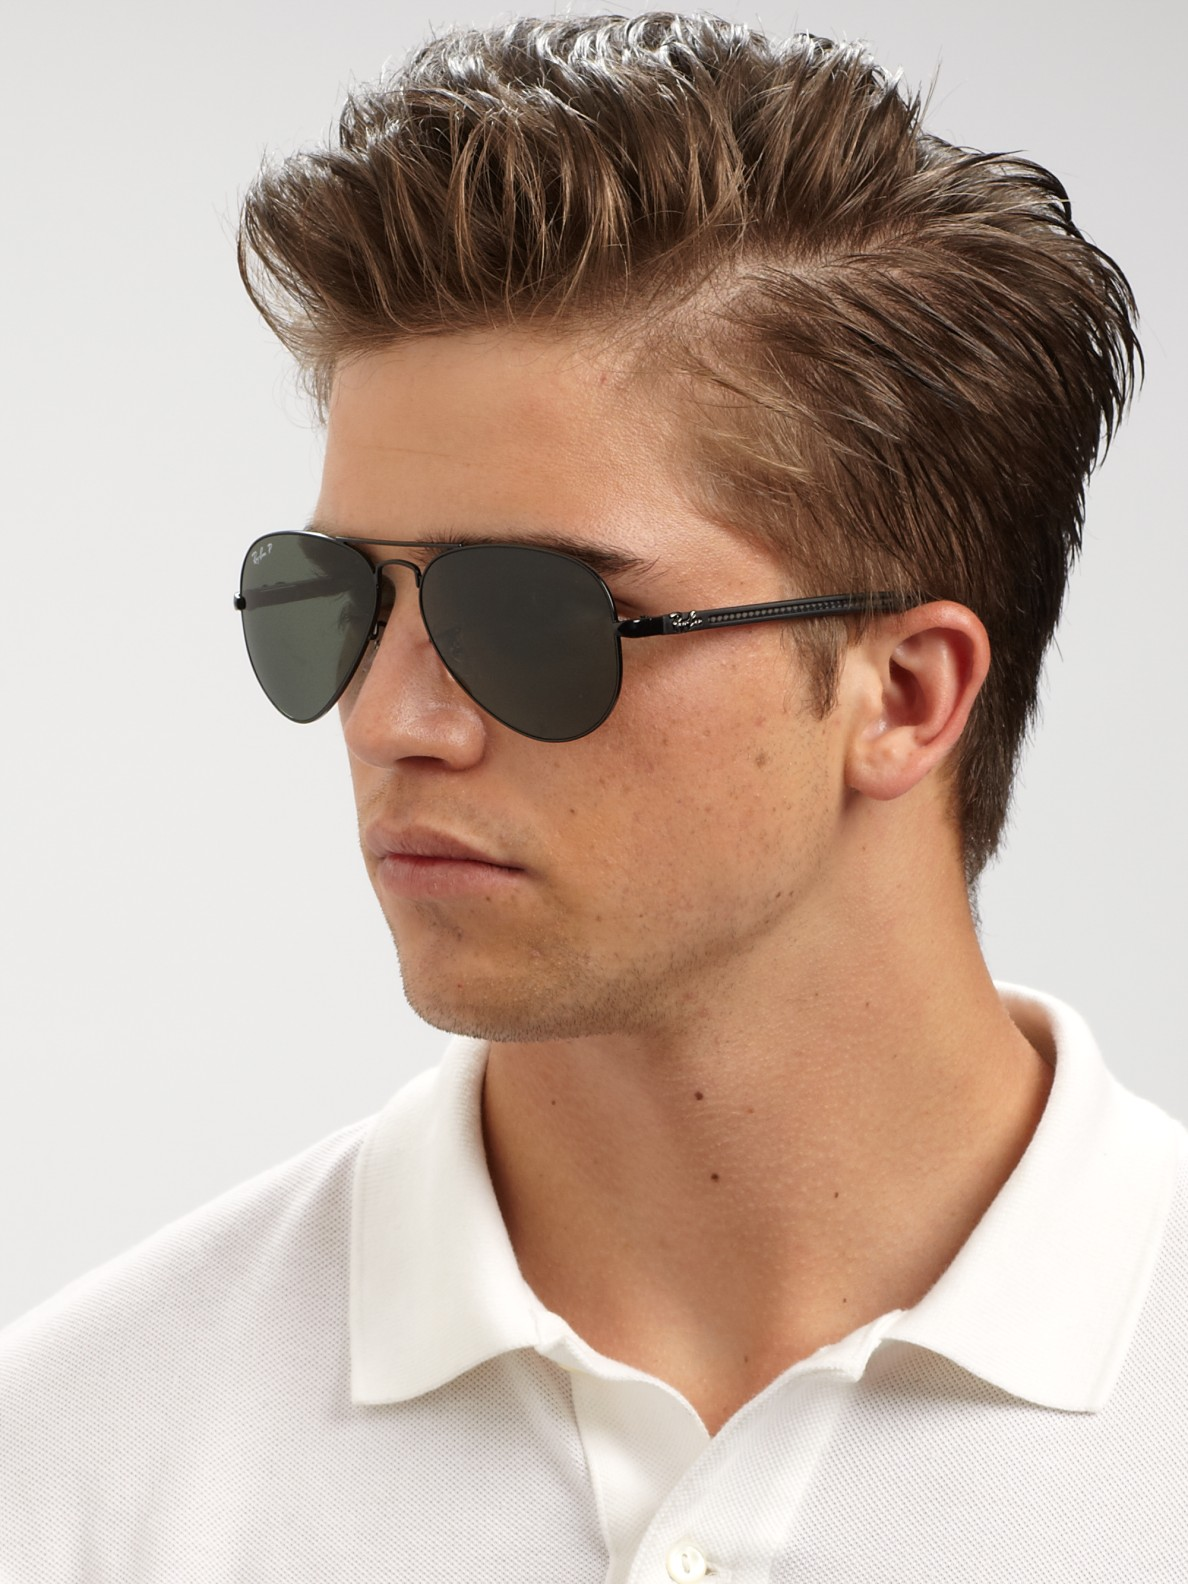 ray ban aviators mens 357u  ray ban aviator black men